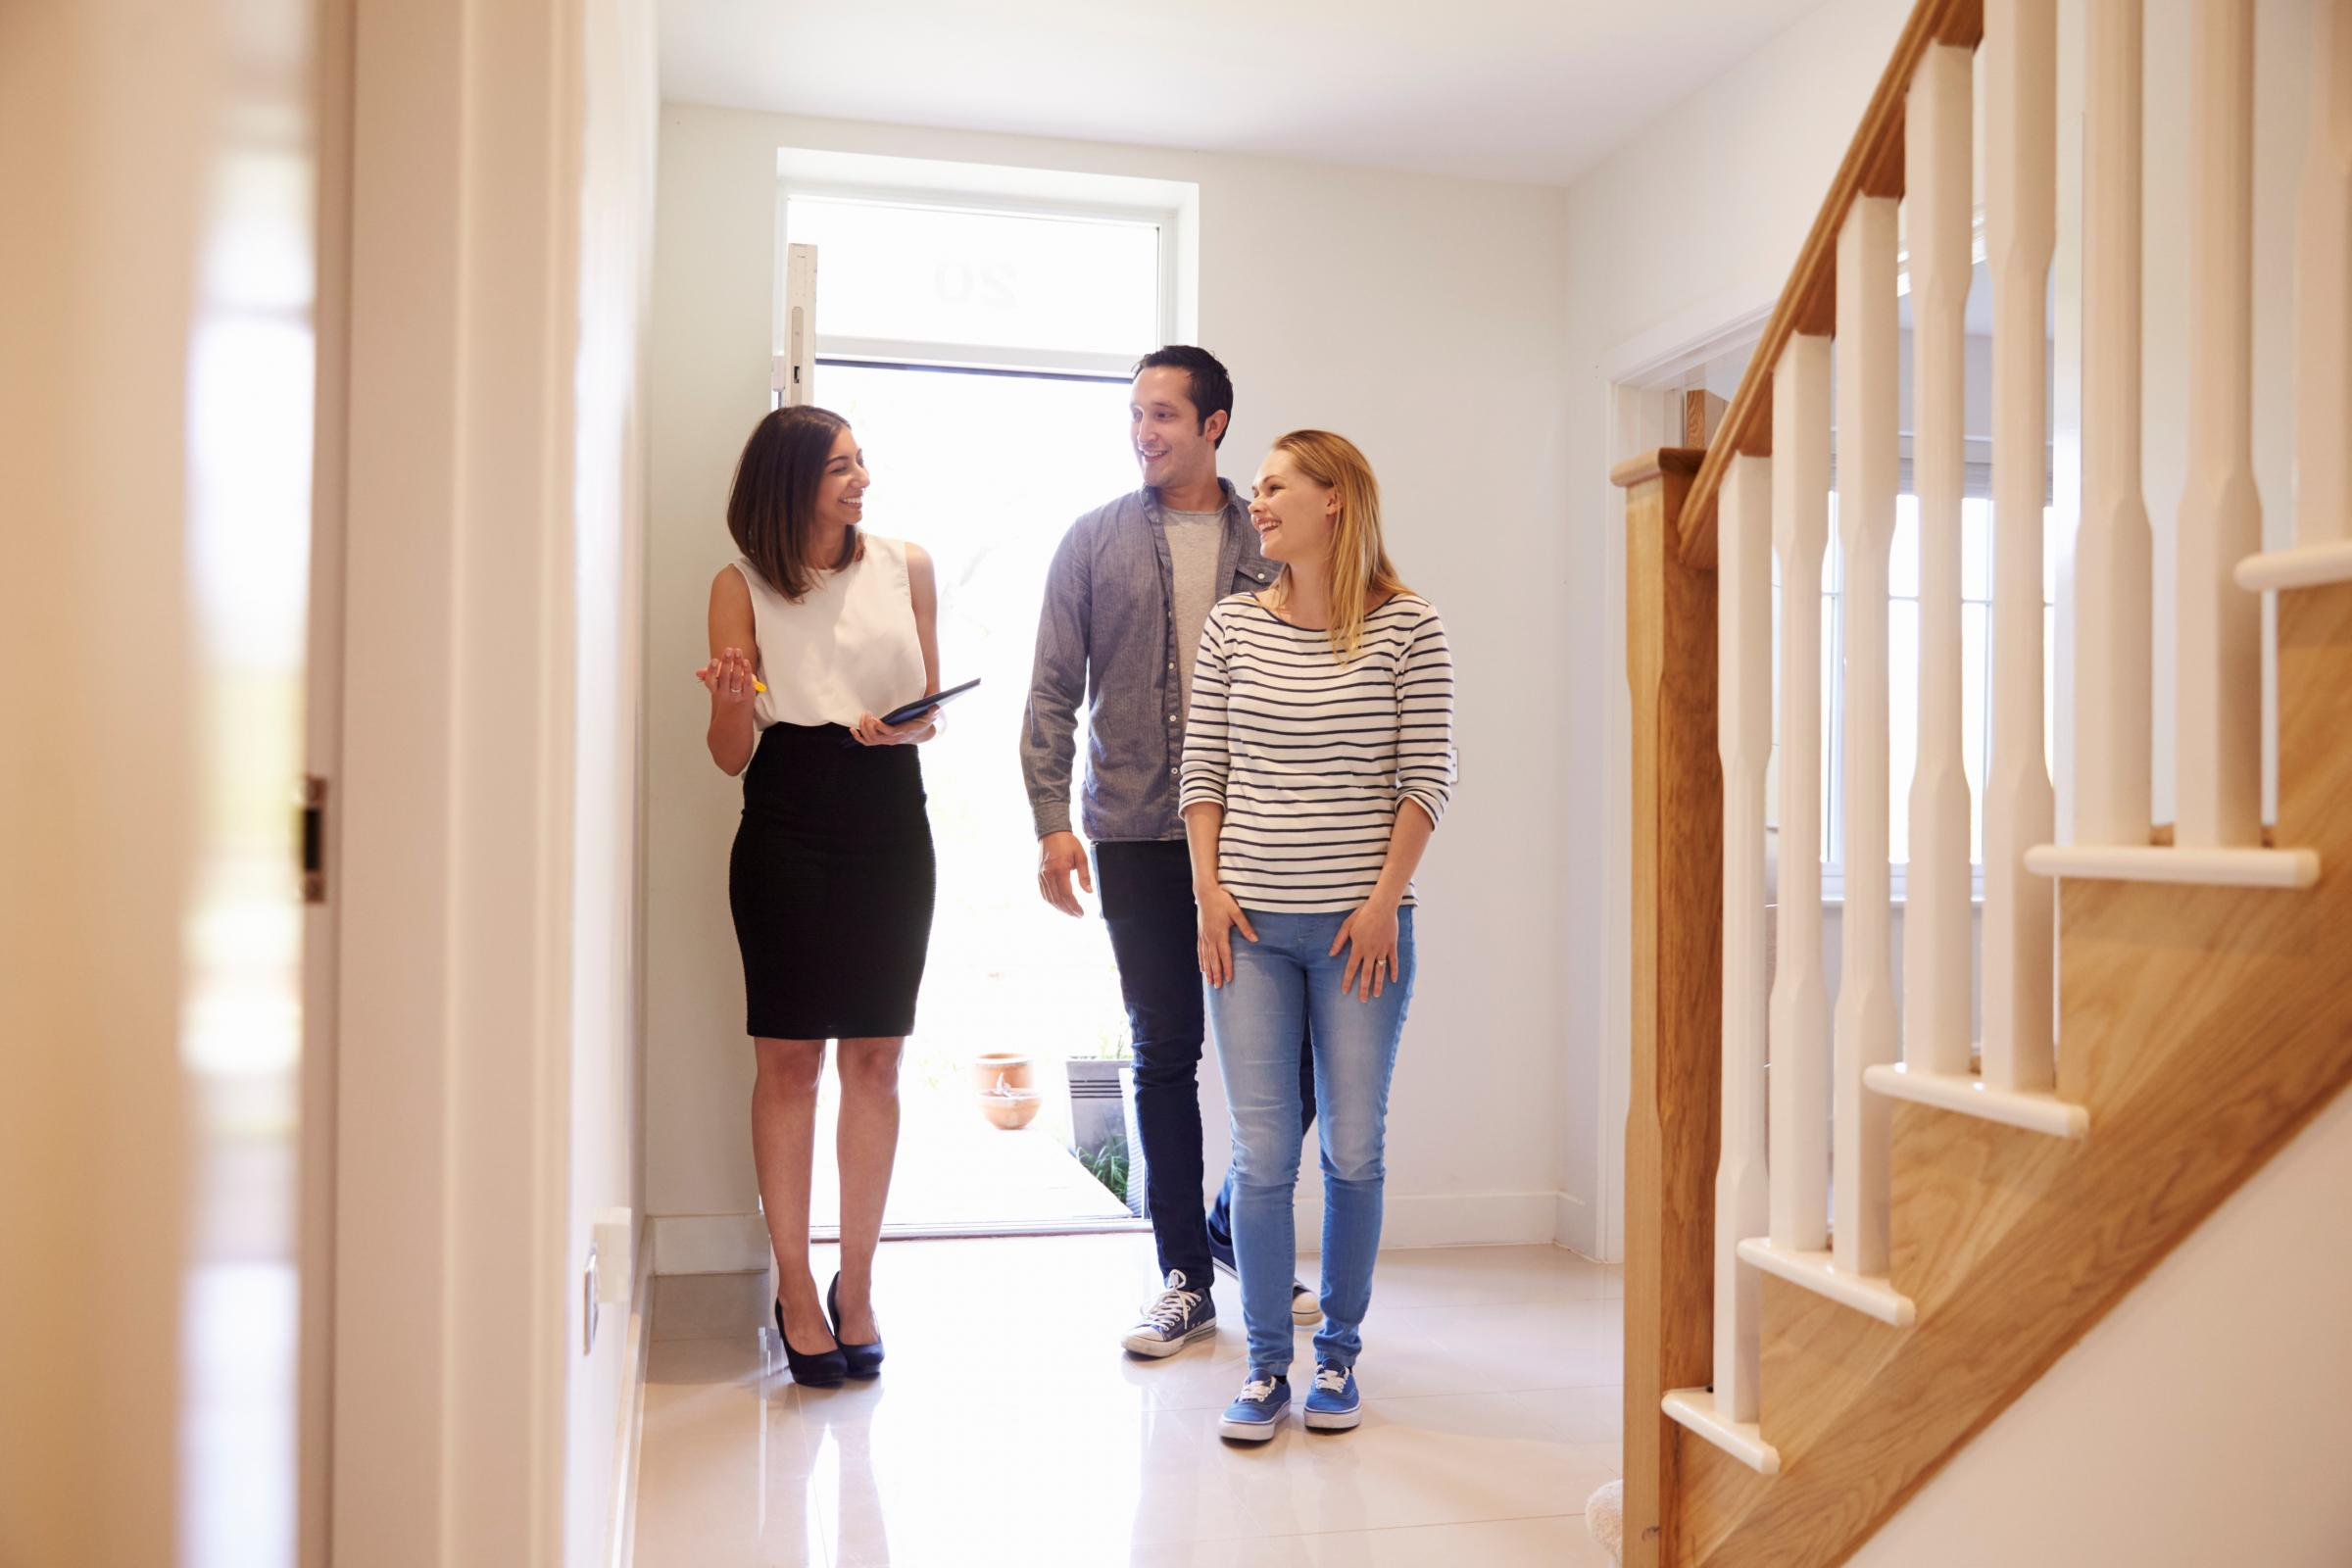 Motor News: Landlords think couples are the perfect tenants